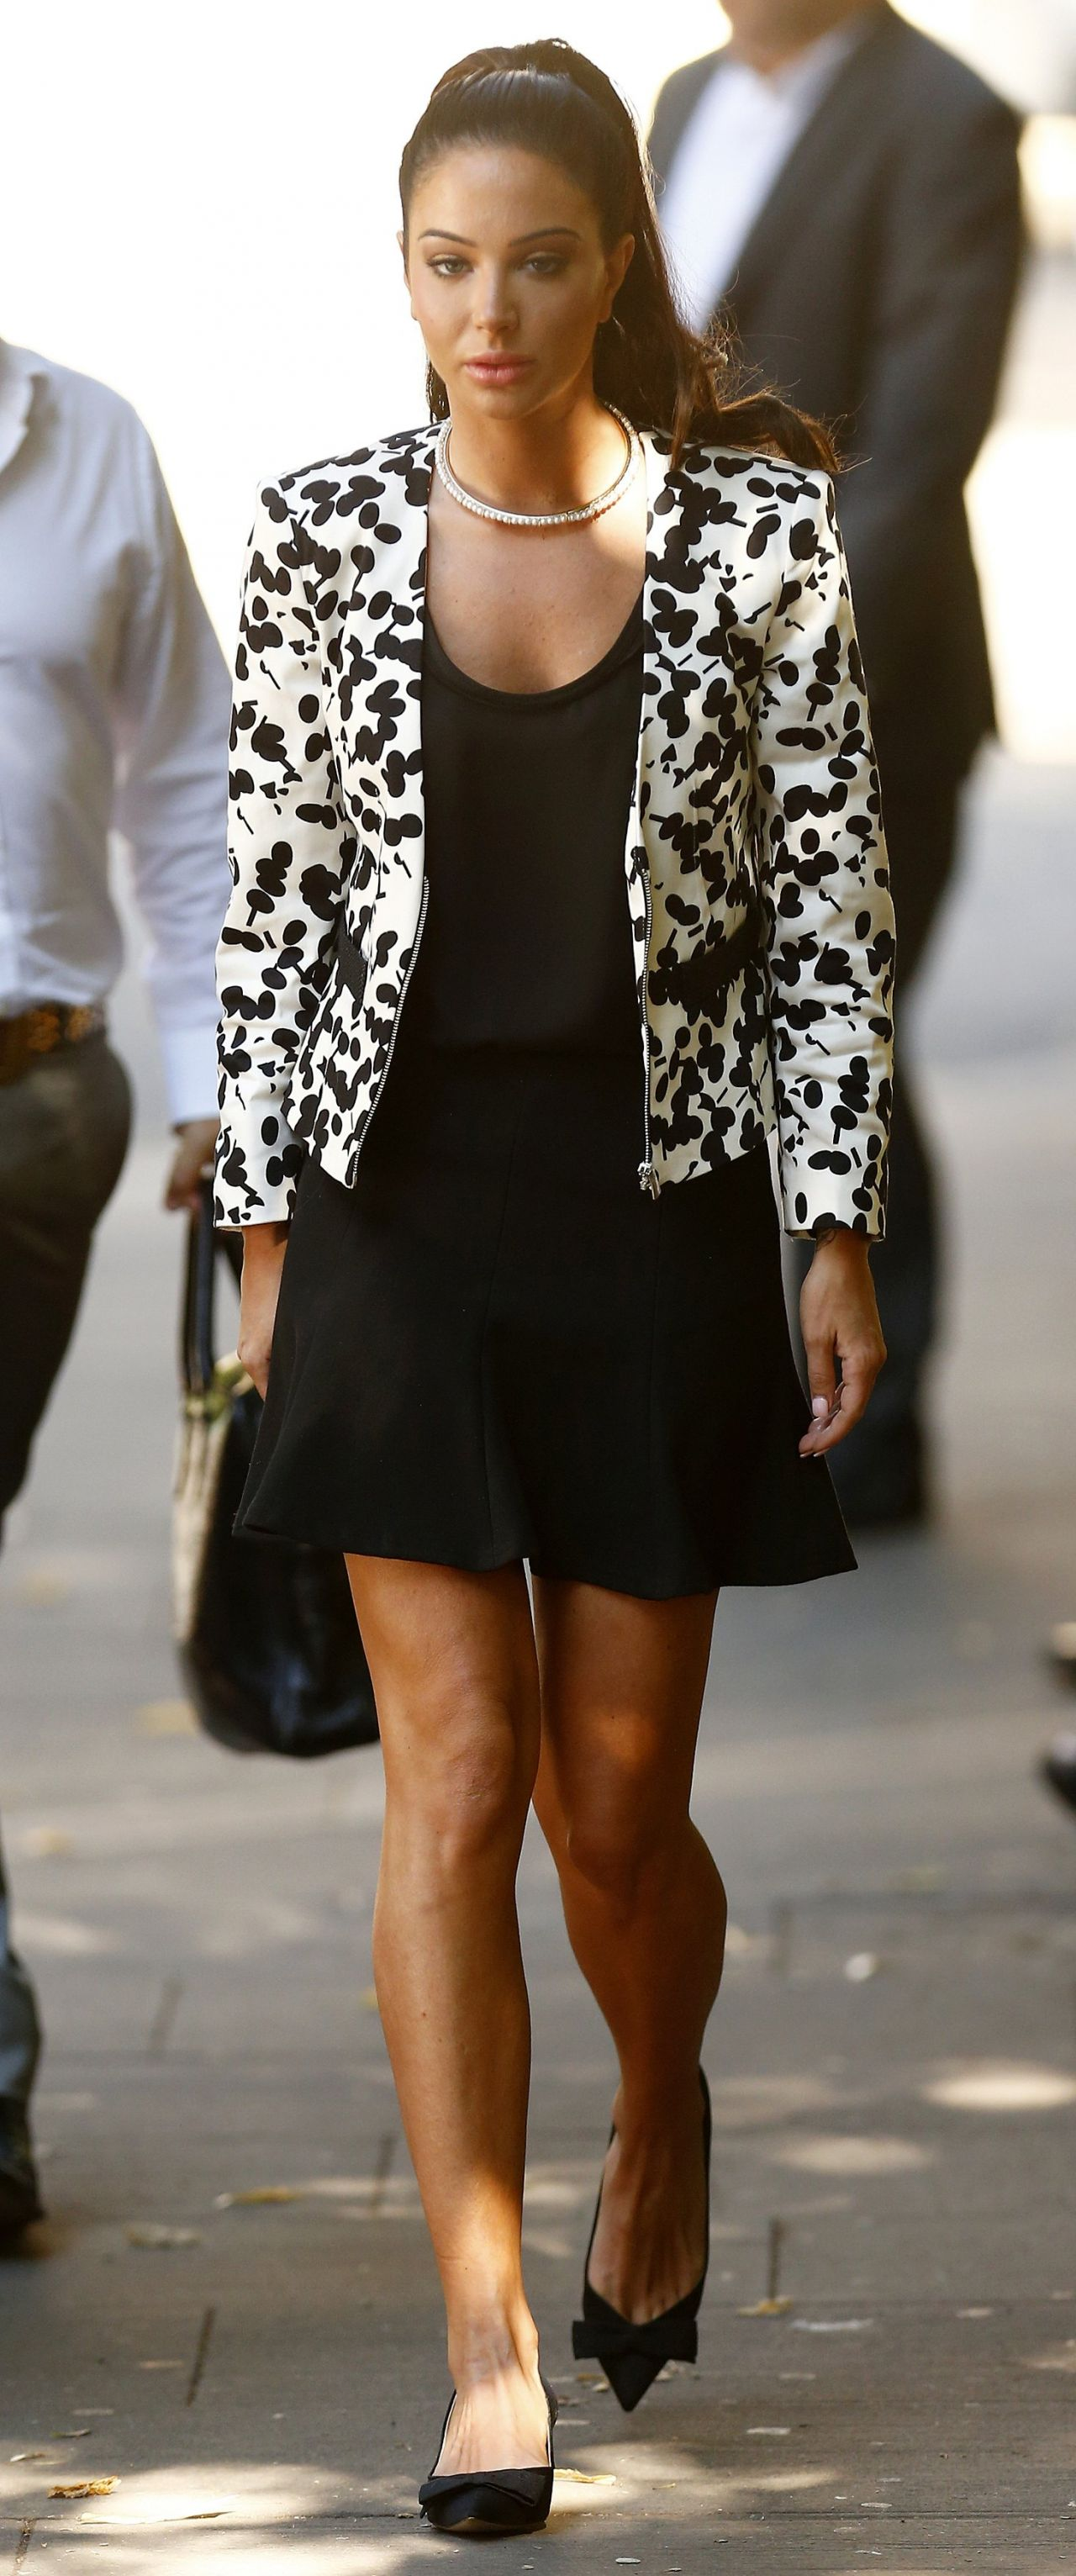 Tulisa Contostavlos Casual Style - Southwark Crown Court - July 2014